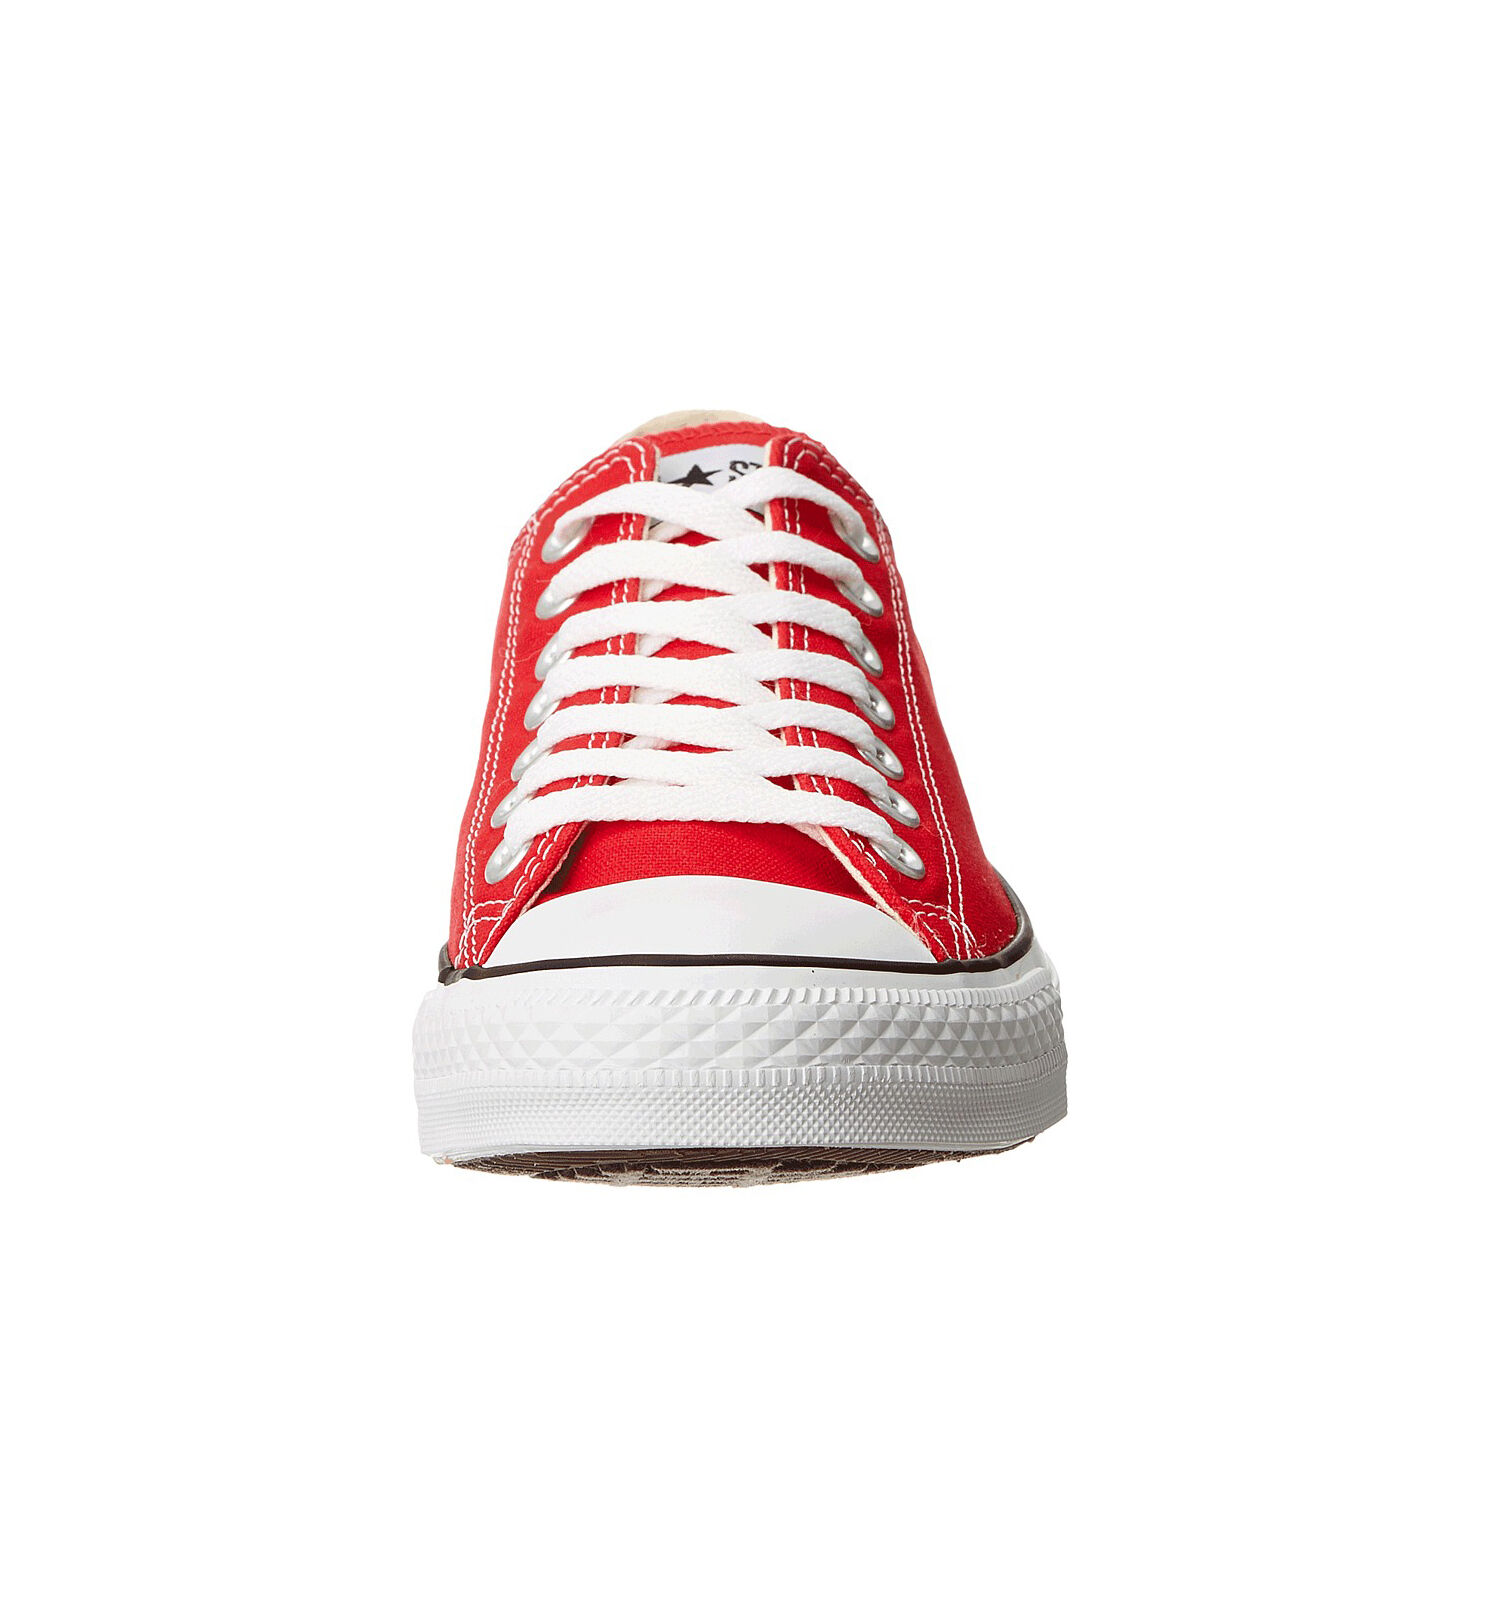 Converse Chuck Taylor Top All Star Schuhes Niedrig Top Taylor ROT Men Classic Sneakers M9696 956b5c